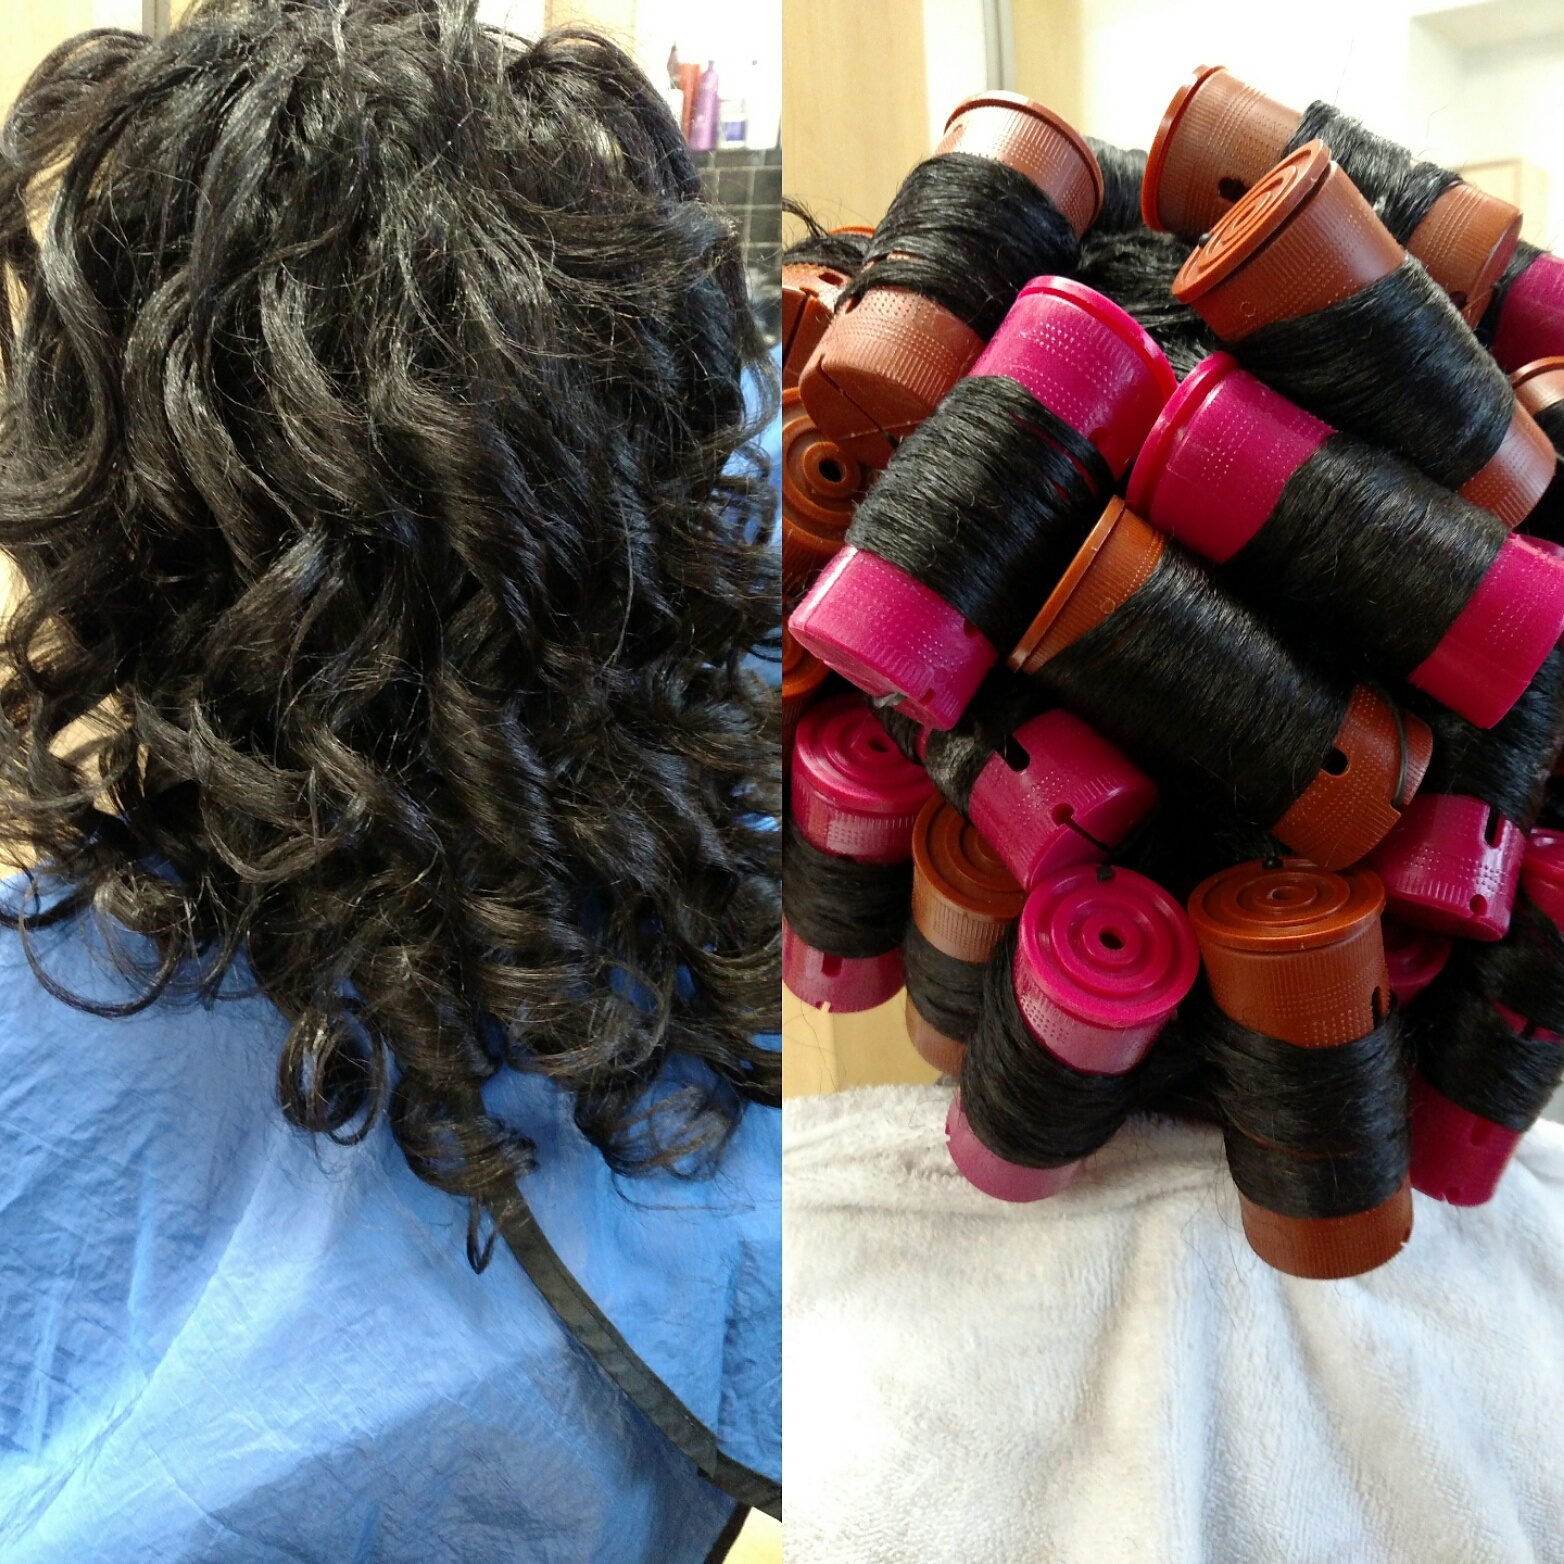 Phenomenalhaircare dont get it twisted curlformers lacers flexi perm rod set by benita blocker relaxed hair solutioingenieria Images